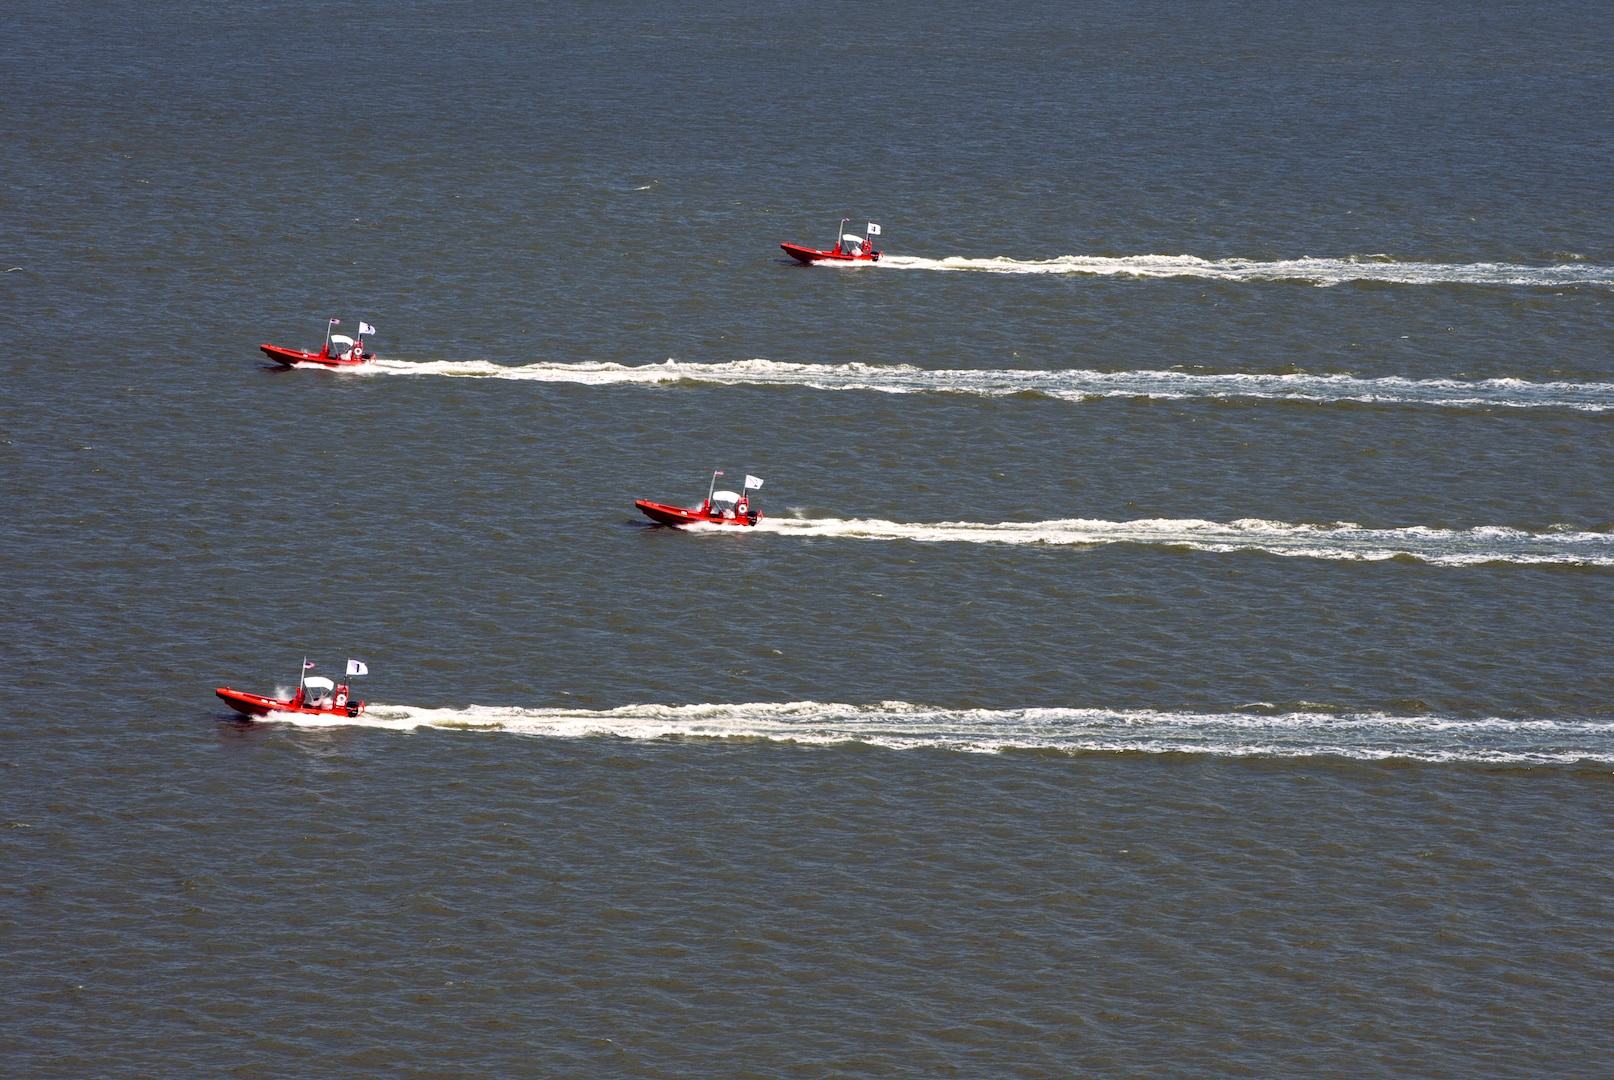 Four unmanned remotely operated high-speed maneuvering surface targets move to blocking positions on James River during Office of Naval Research– sponsored demonstration of autonomous swarmboat technology, Newport News, Virginia, August 13, 2014 (U.S. Navy/John Paul Kotara)